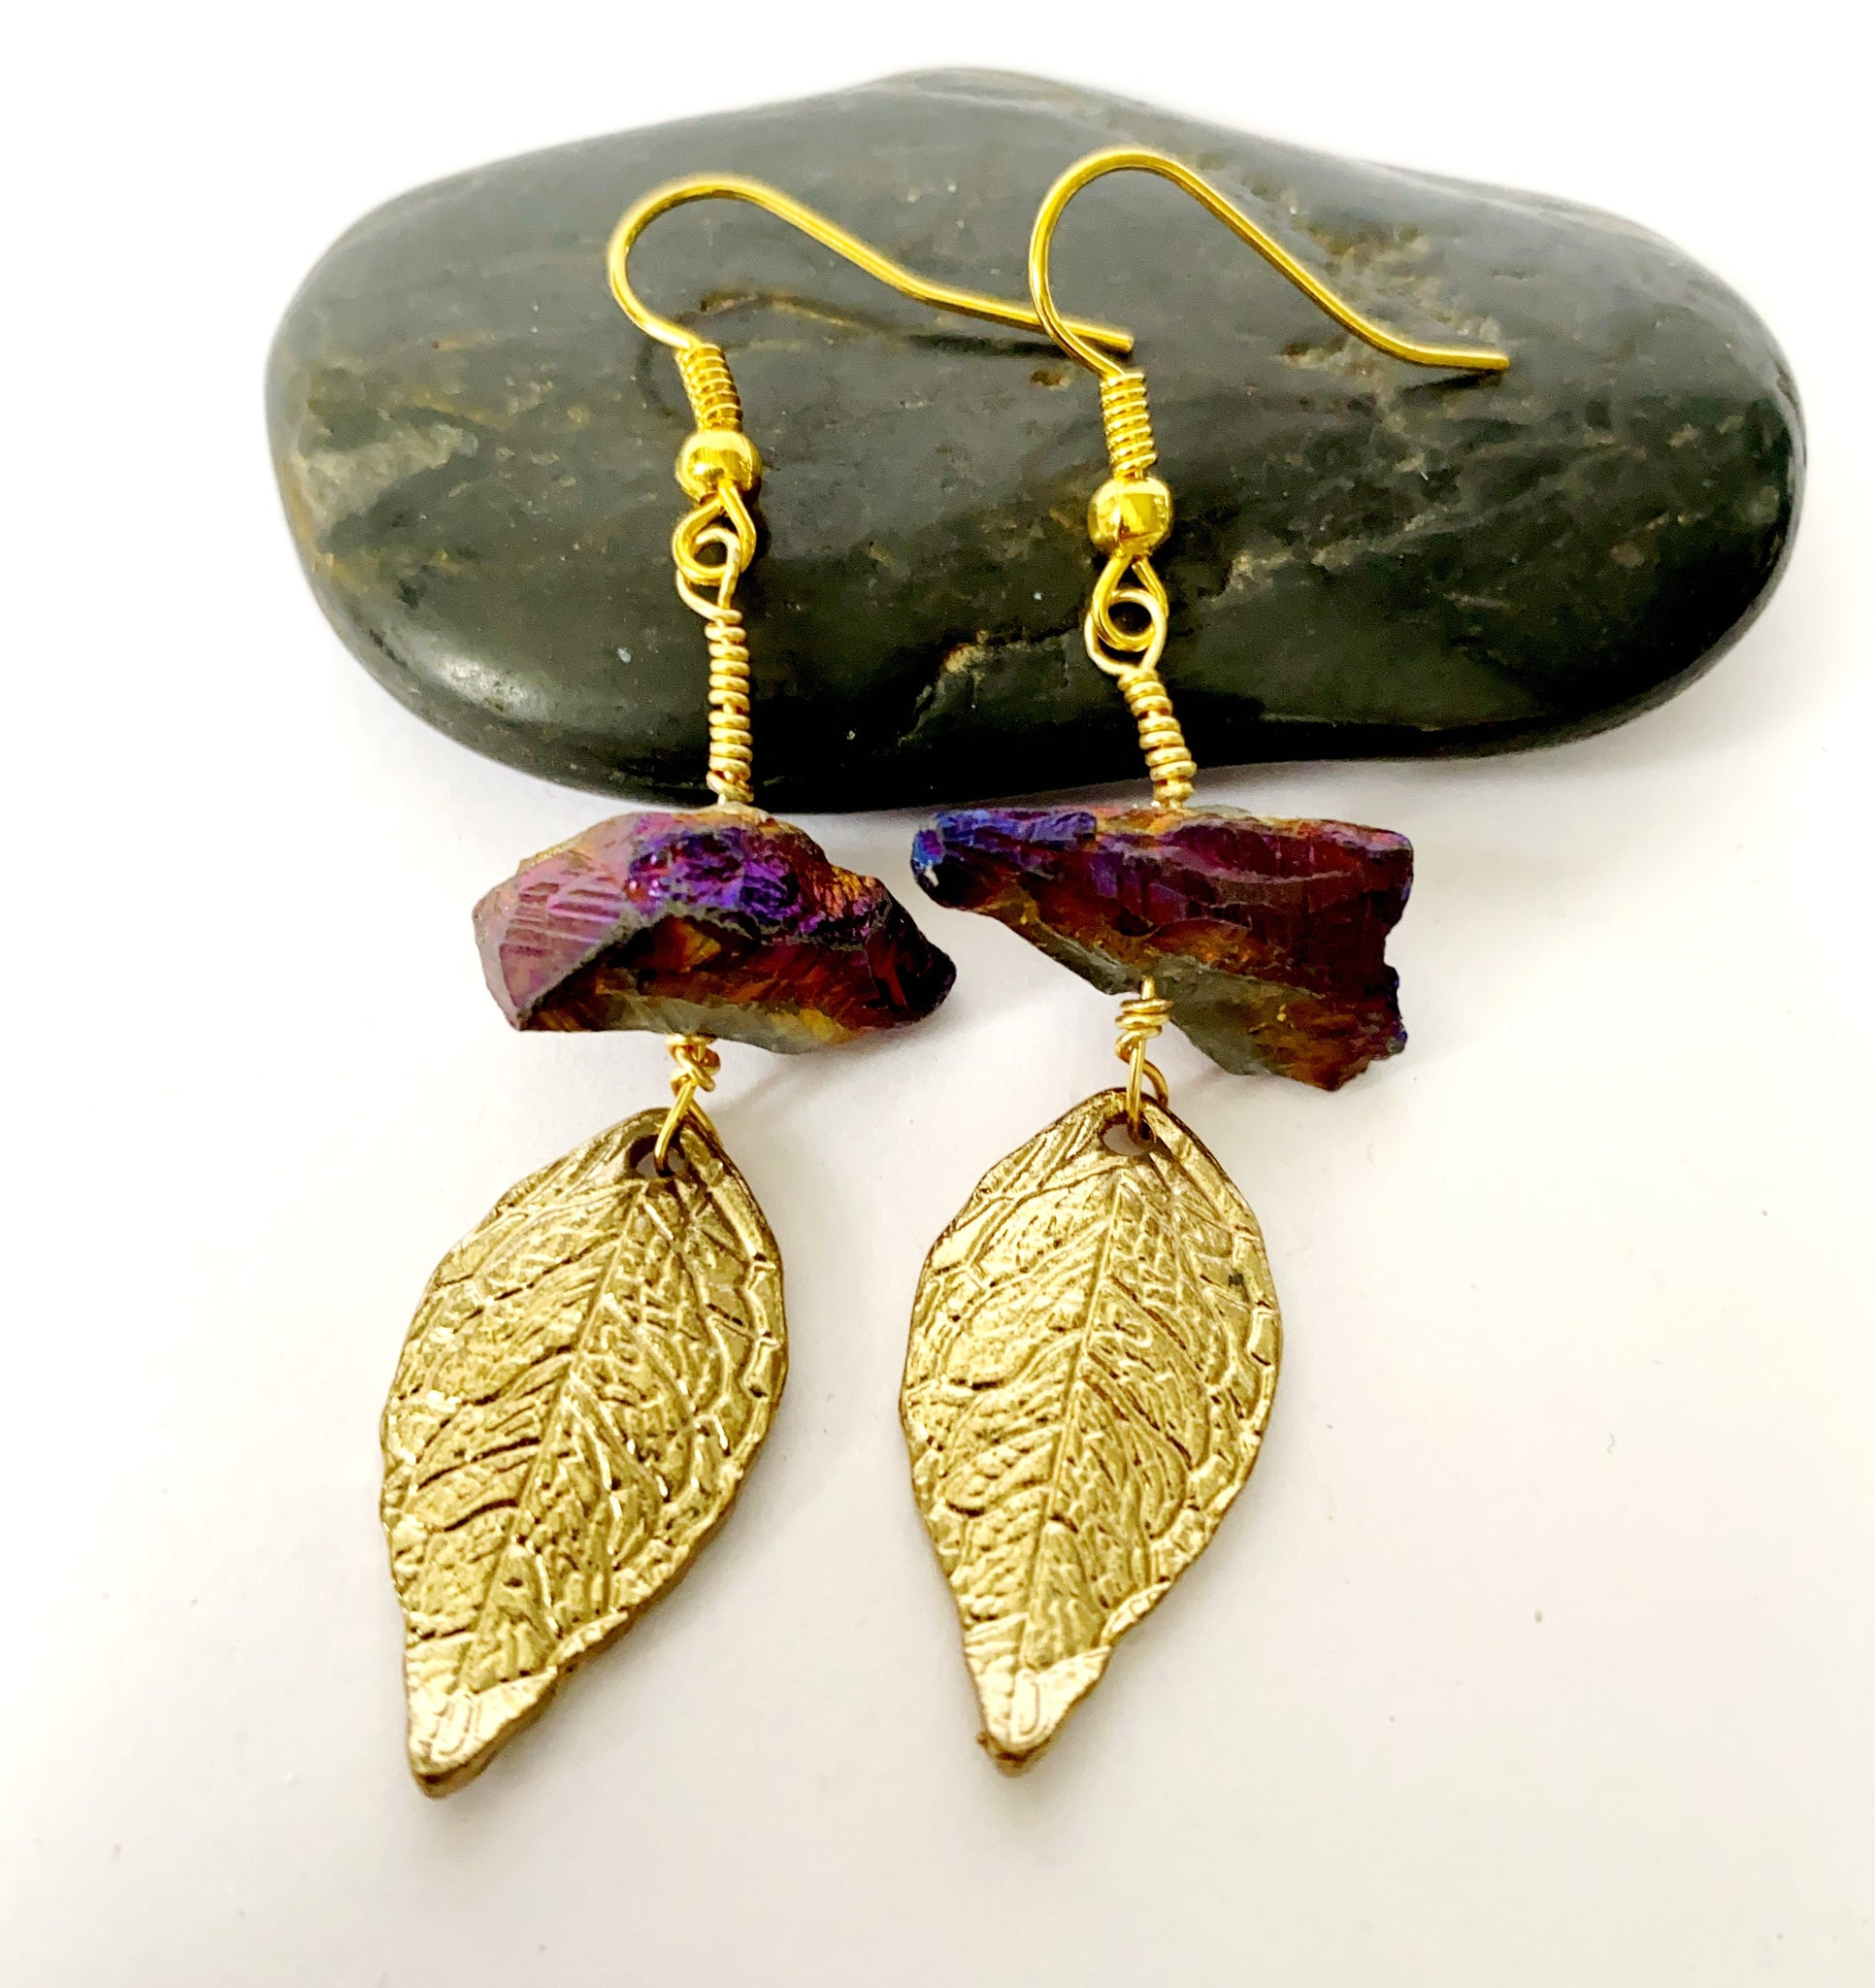 Titanium Quartz Leaf Gold Earrings - Glitter and Gem Jewellery